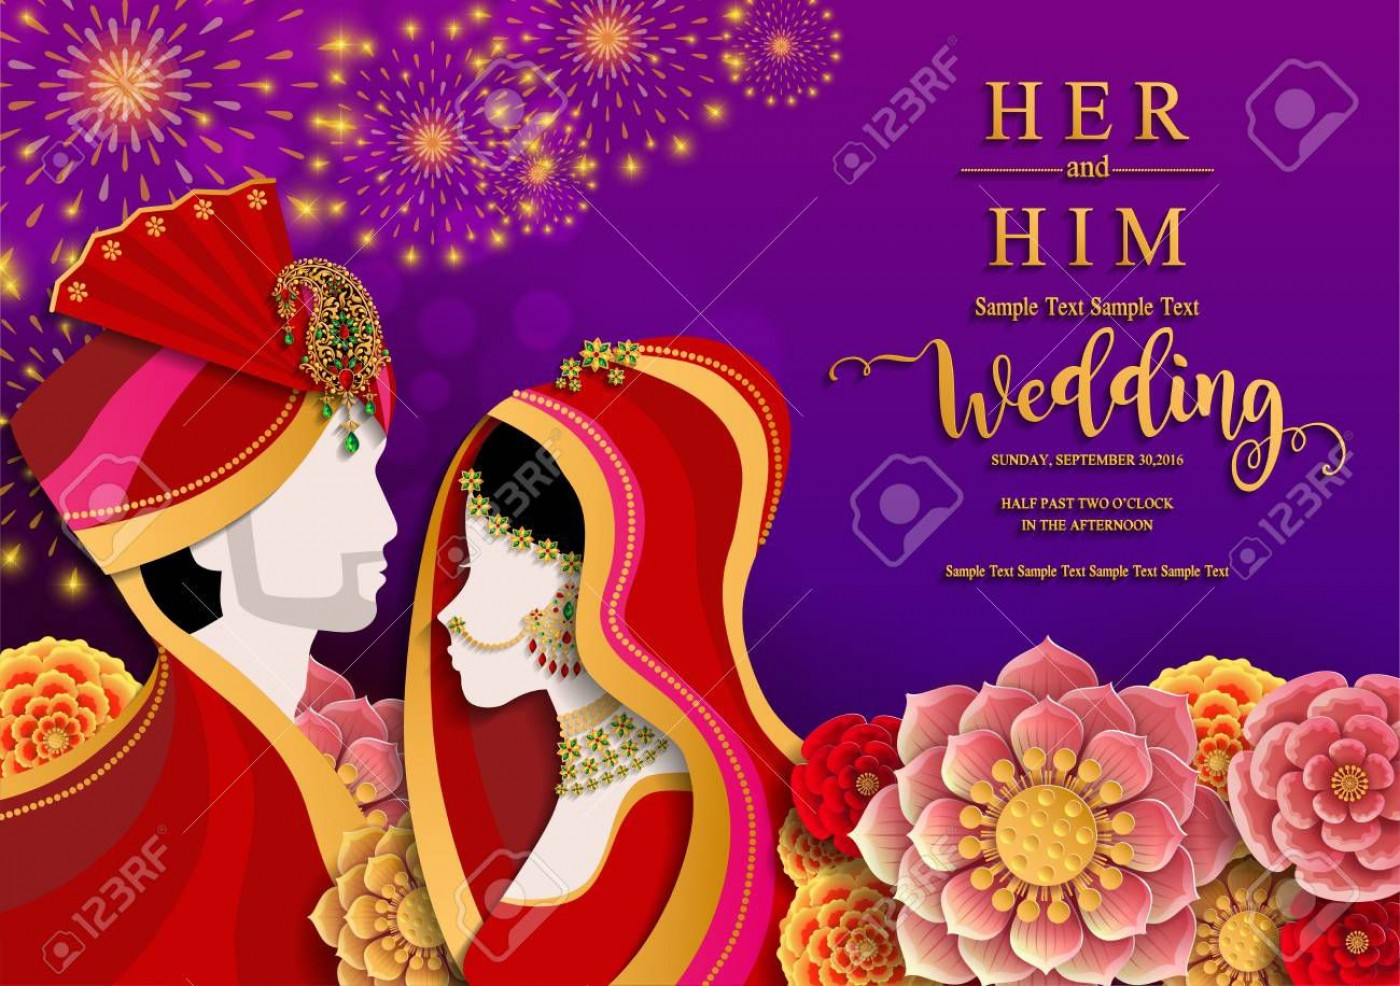 005 Astounding Indian Wedding Invitation Template Idea  Psd Free Download Marriage Online For Friend1400